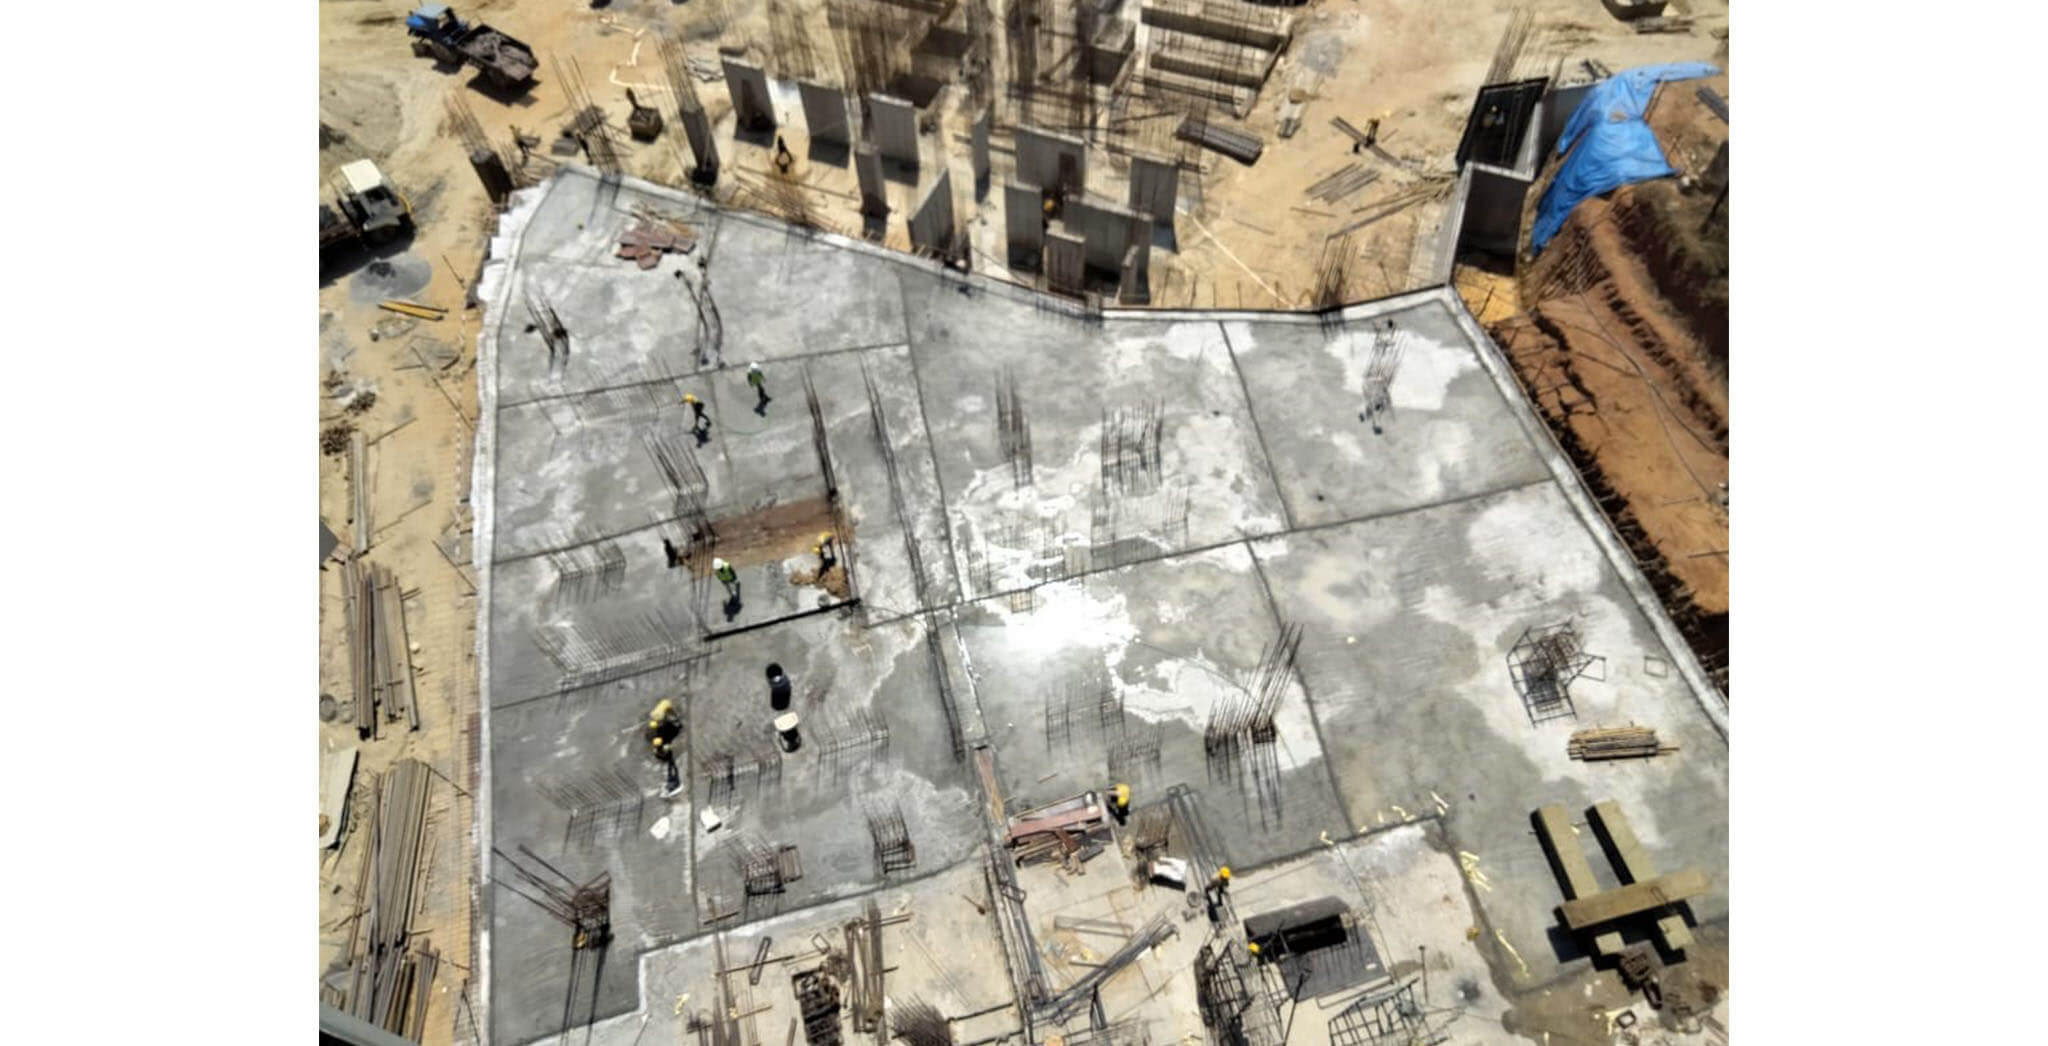 Mar 2021 - Tranquil: Tower Q—On Casting of Upper basement floor slab, 15th March 2021